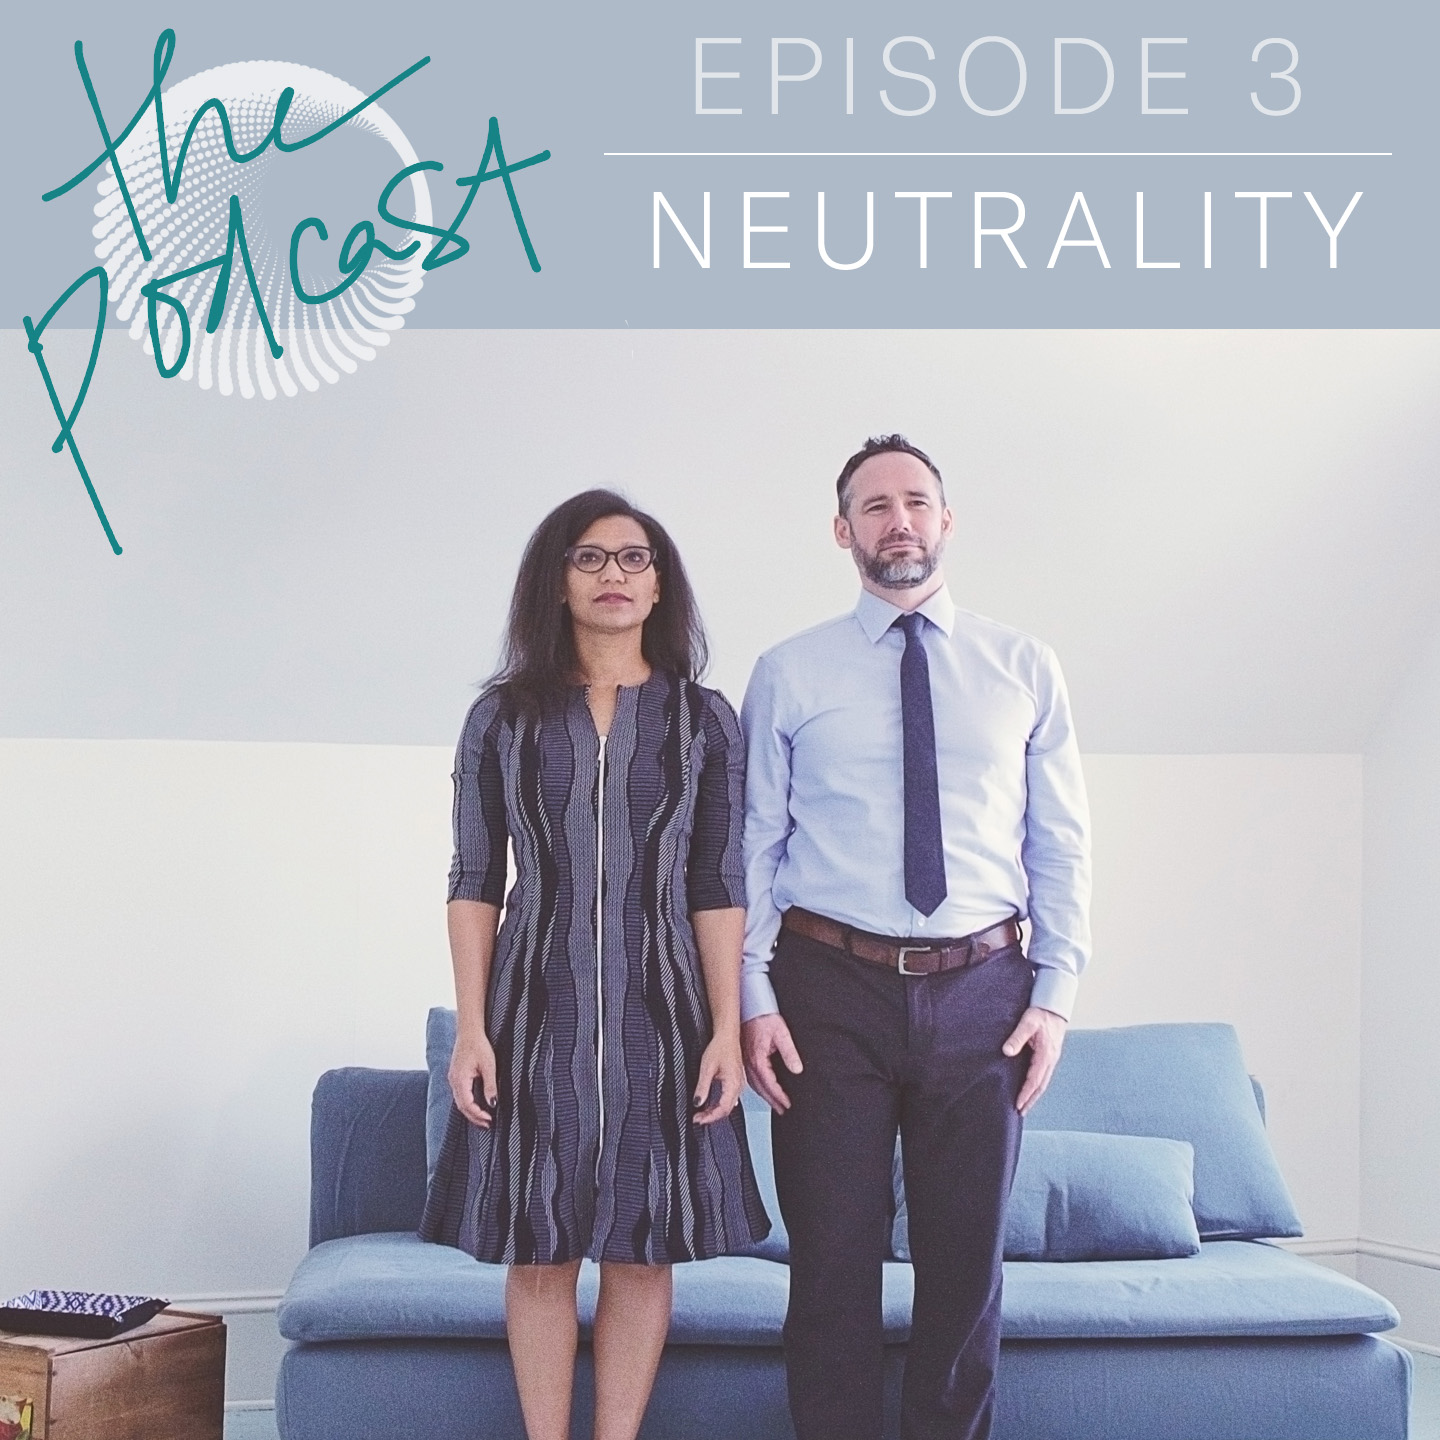 S01 EP03: NEUTRALITY THE HOW-TO OF FACILITATION THAT BRINGS MORE — IDEAS, VOICES, CLARITY — FORWARD  In episode three, we contemplate the nature of neutrality. Is it possible—or desirable—to be neutral as a facilitator? What are our obligations towards the people in the room?